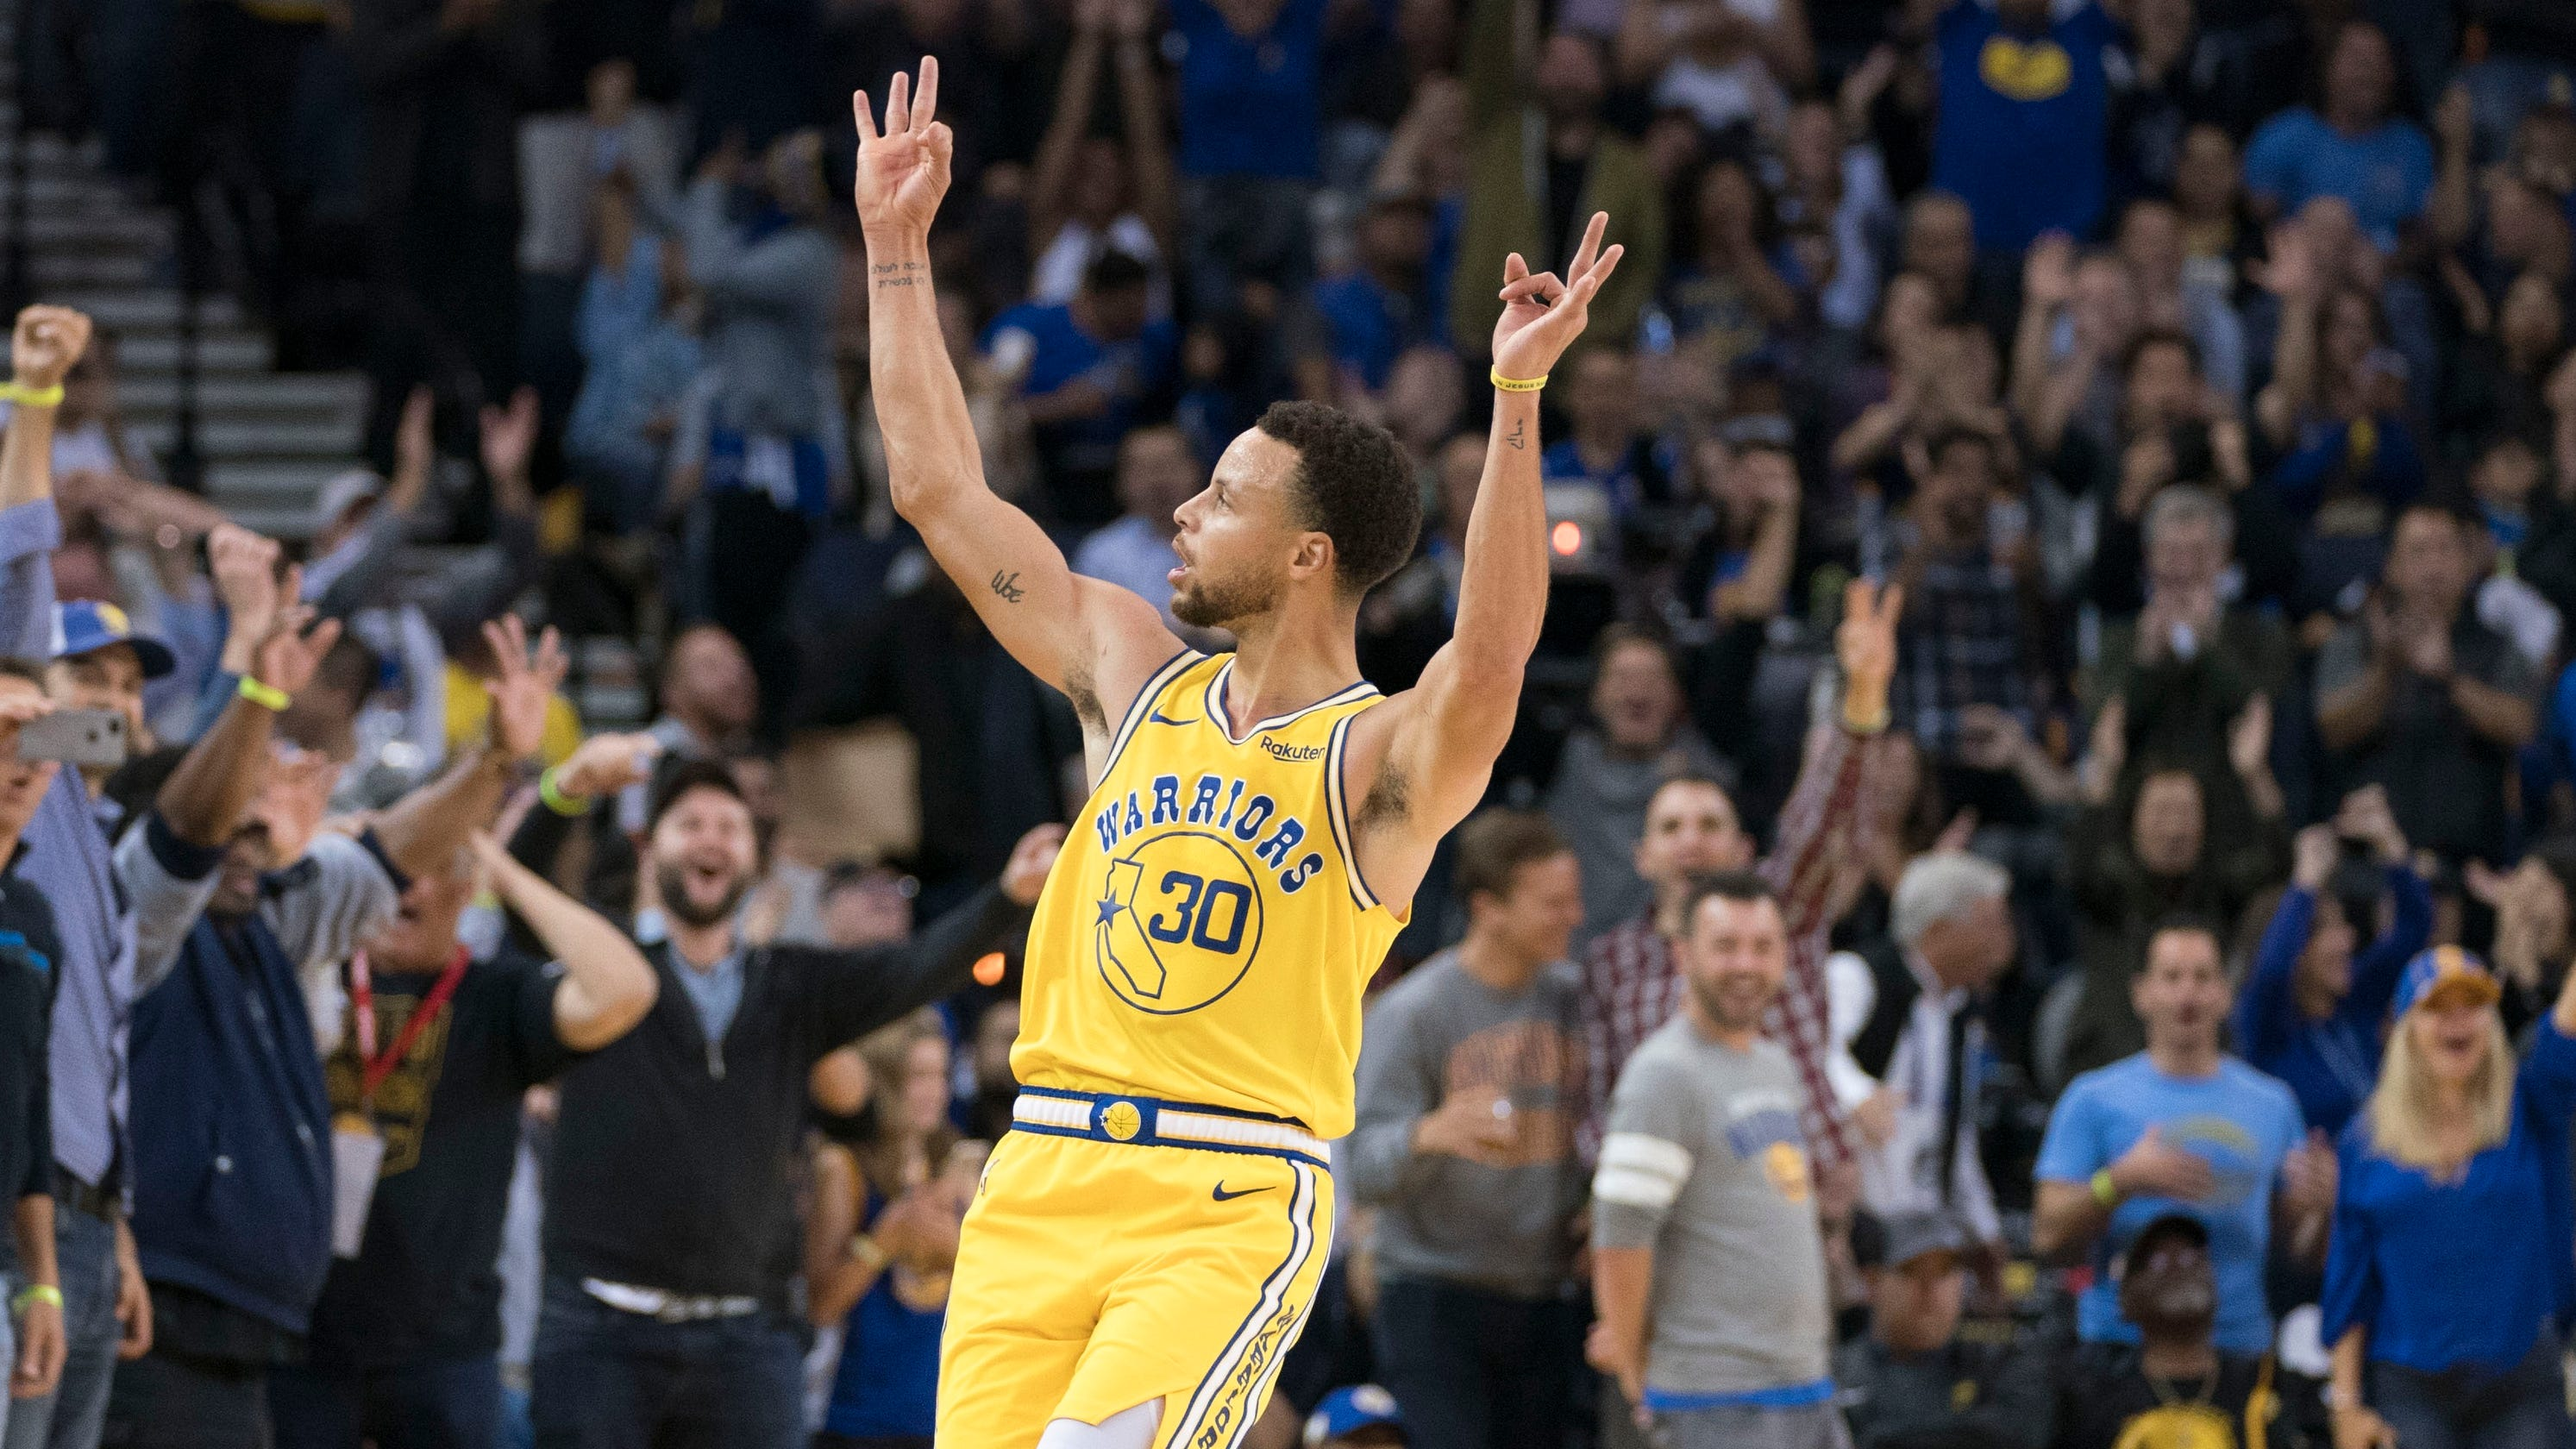 acba2930bc6 Steph Curry pours in 51 points in three quarters as Warriors rout Wizards